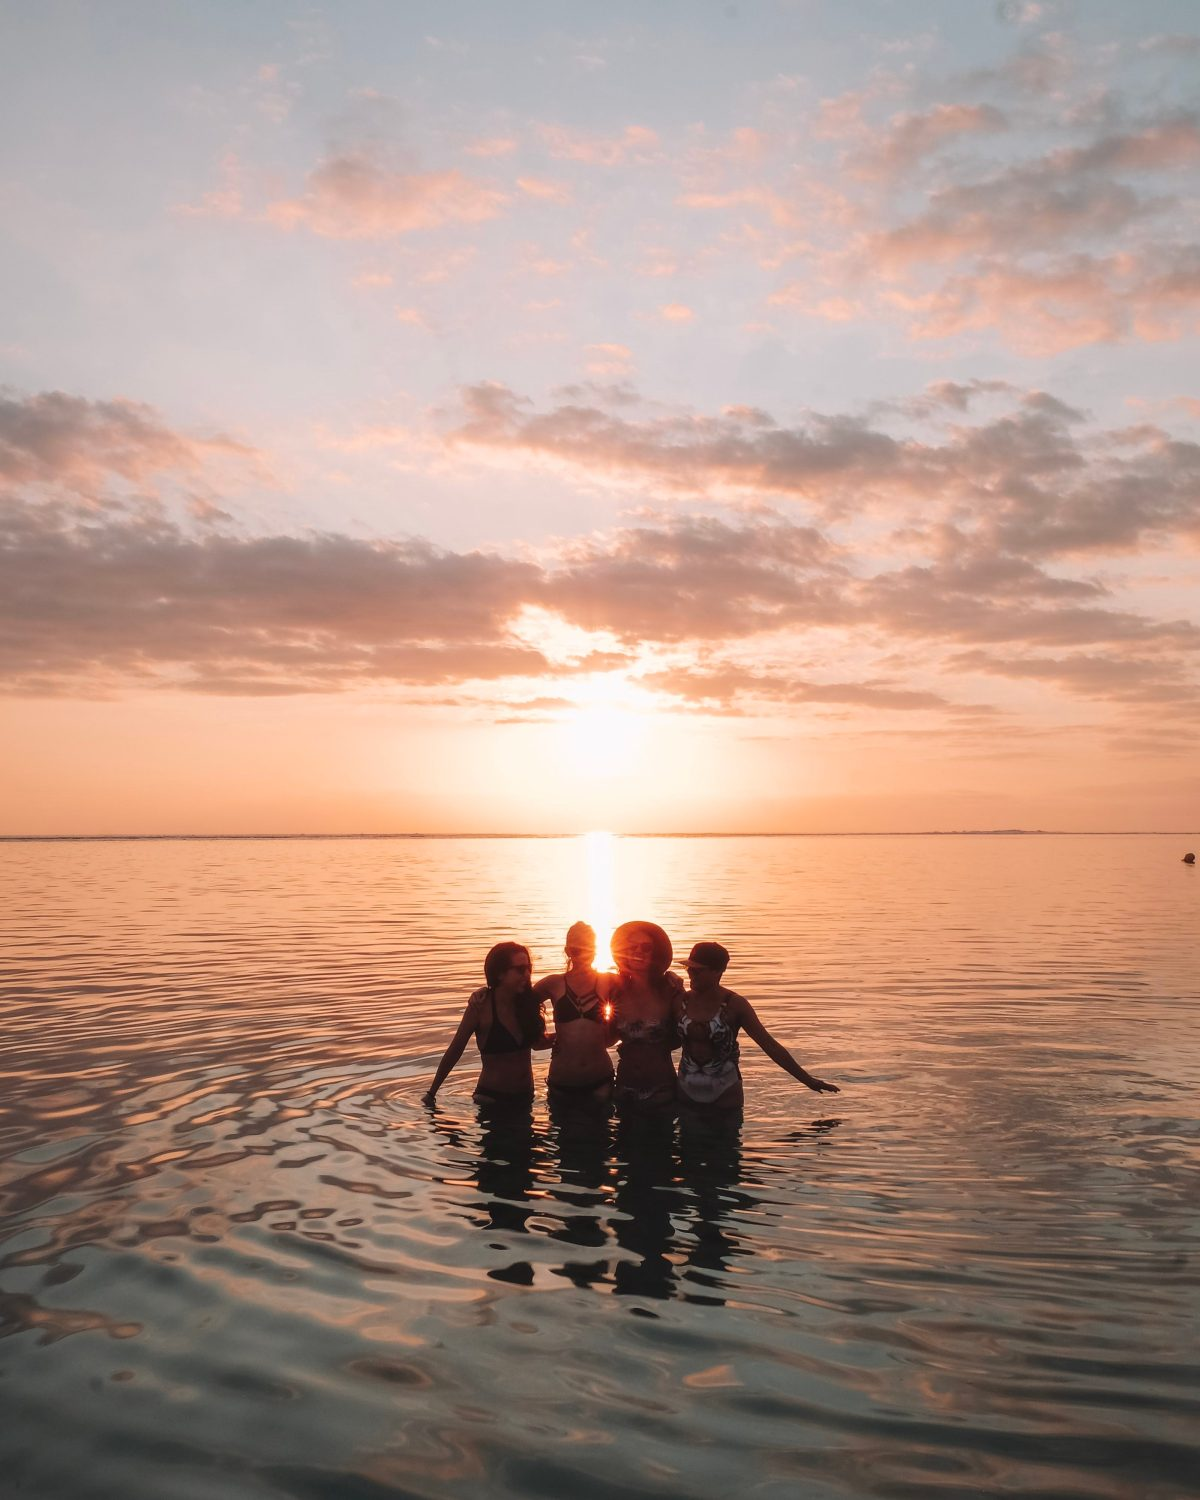 reunion island travel guide for girls